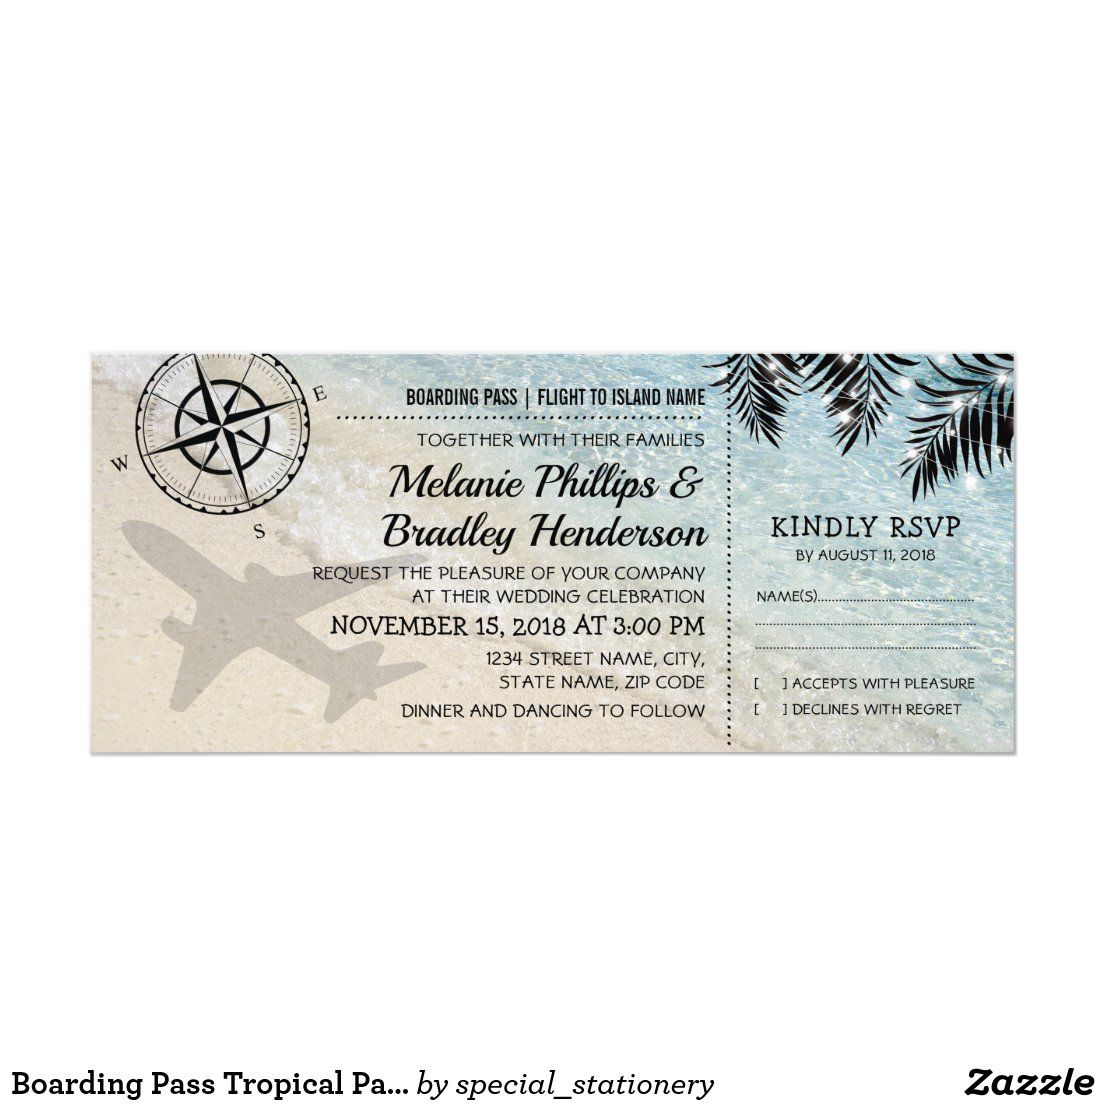 Boarding Pass Tropical Paradise Beach Wedding Invitation